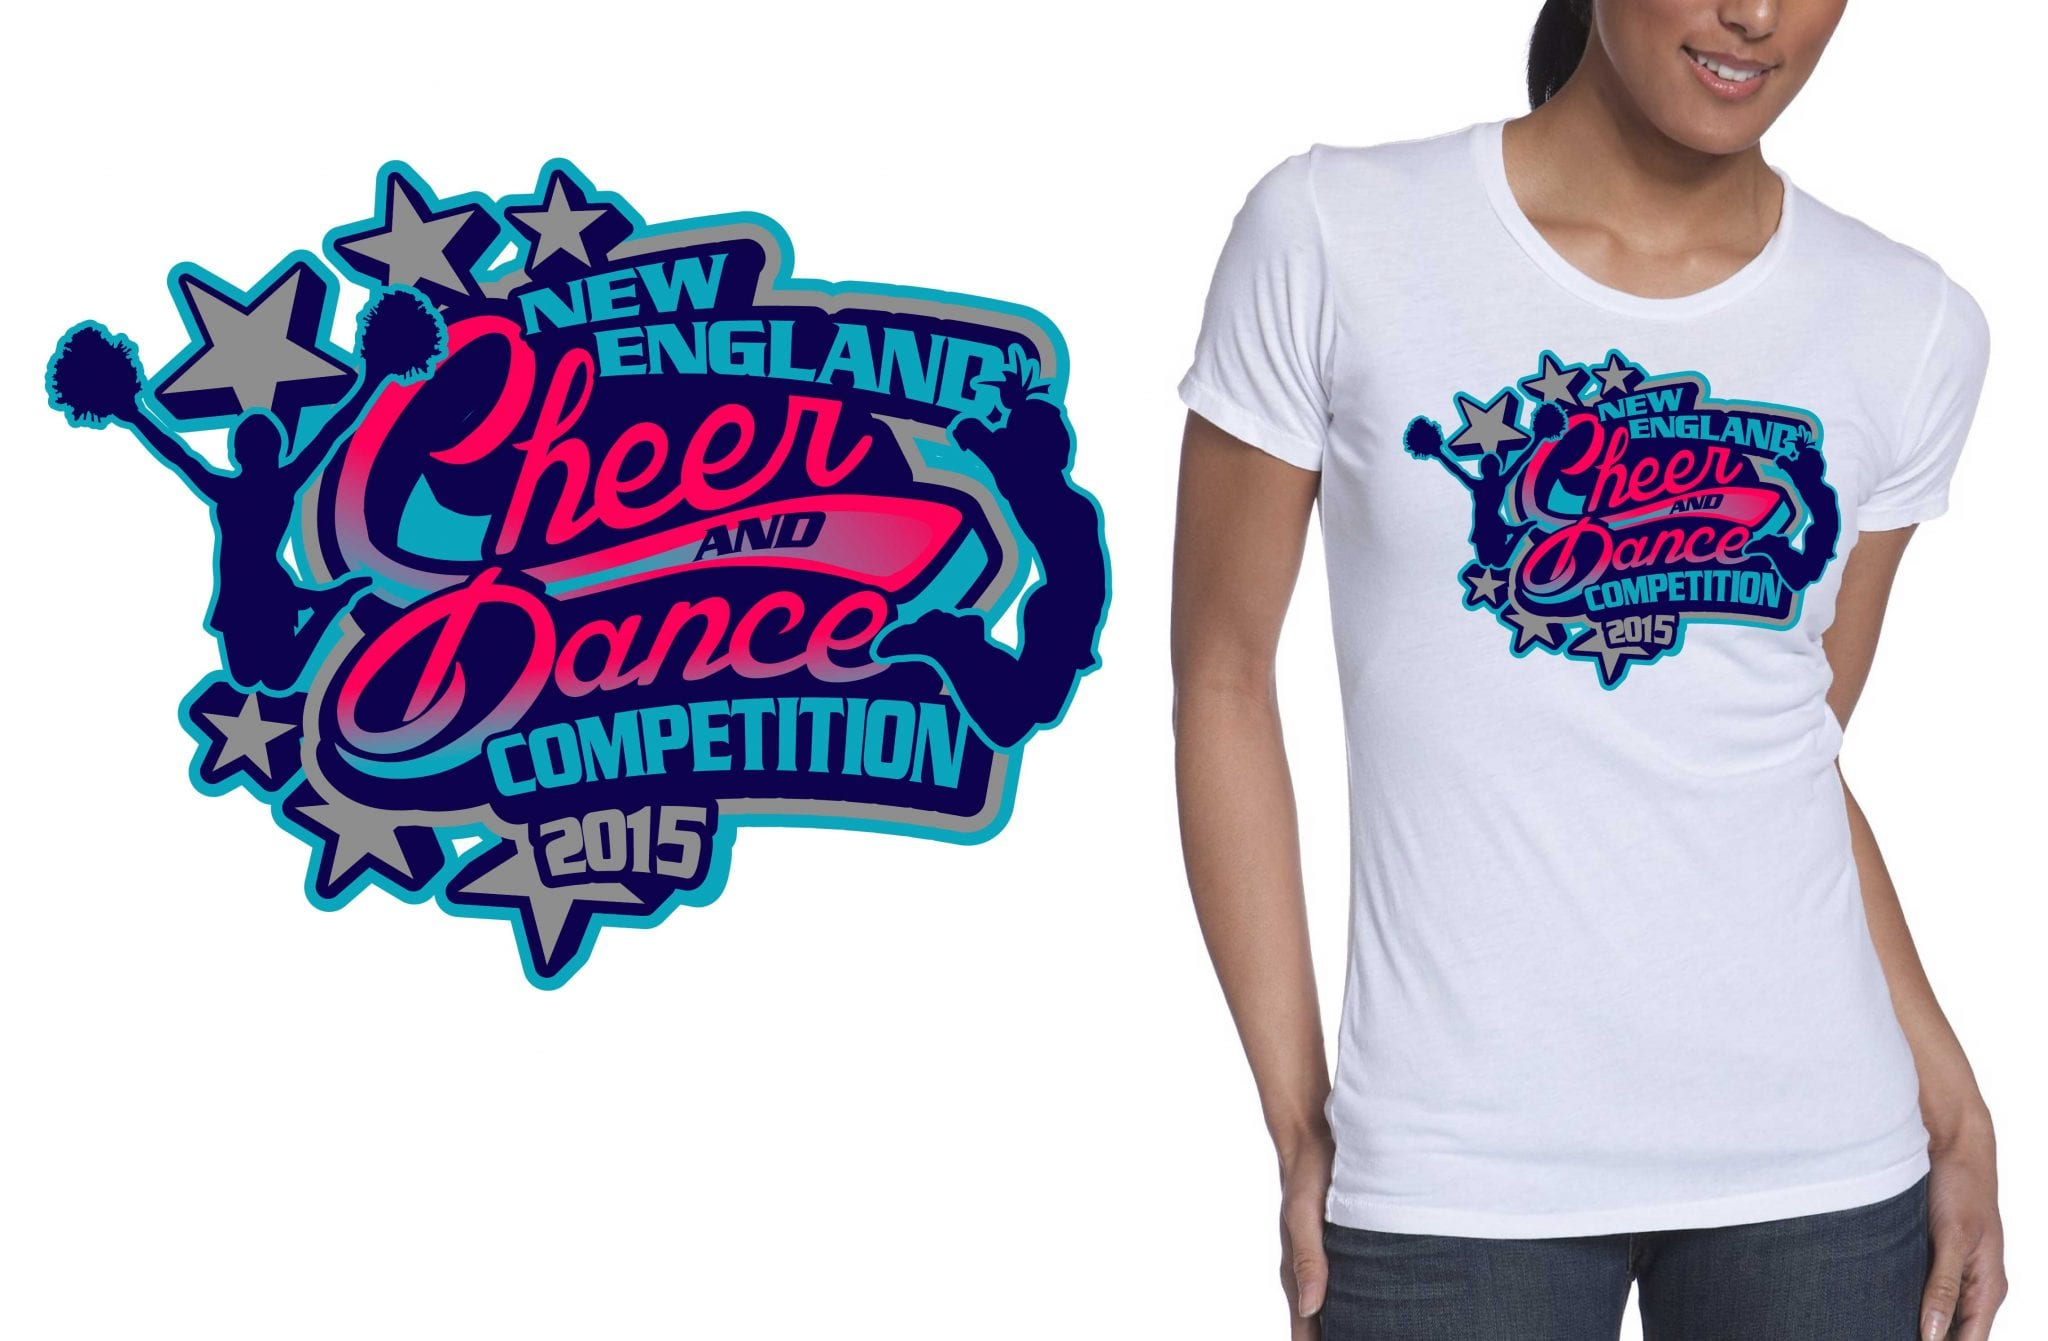 2015 New England Cheer and Dance Competition best tshirt logo design